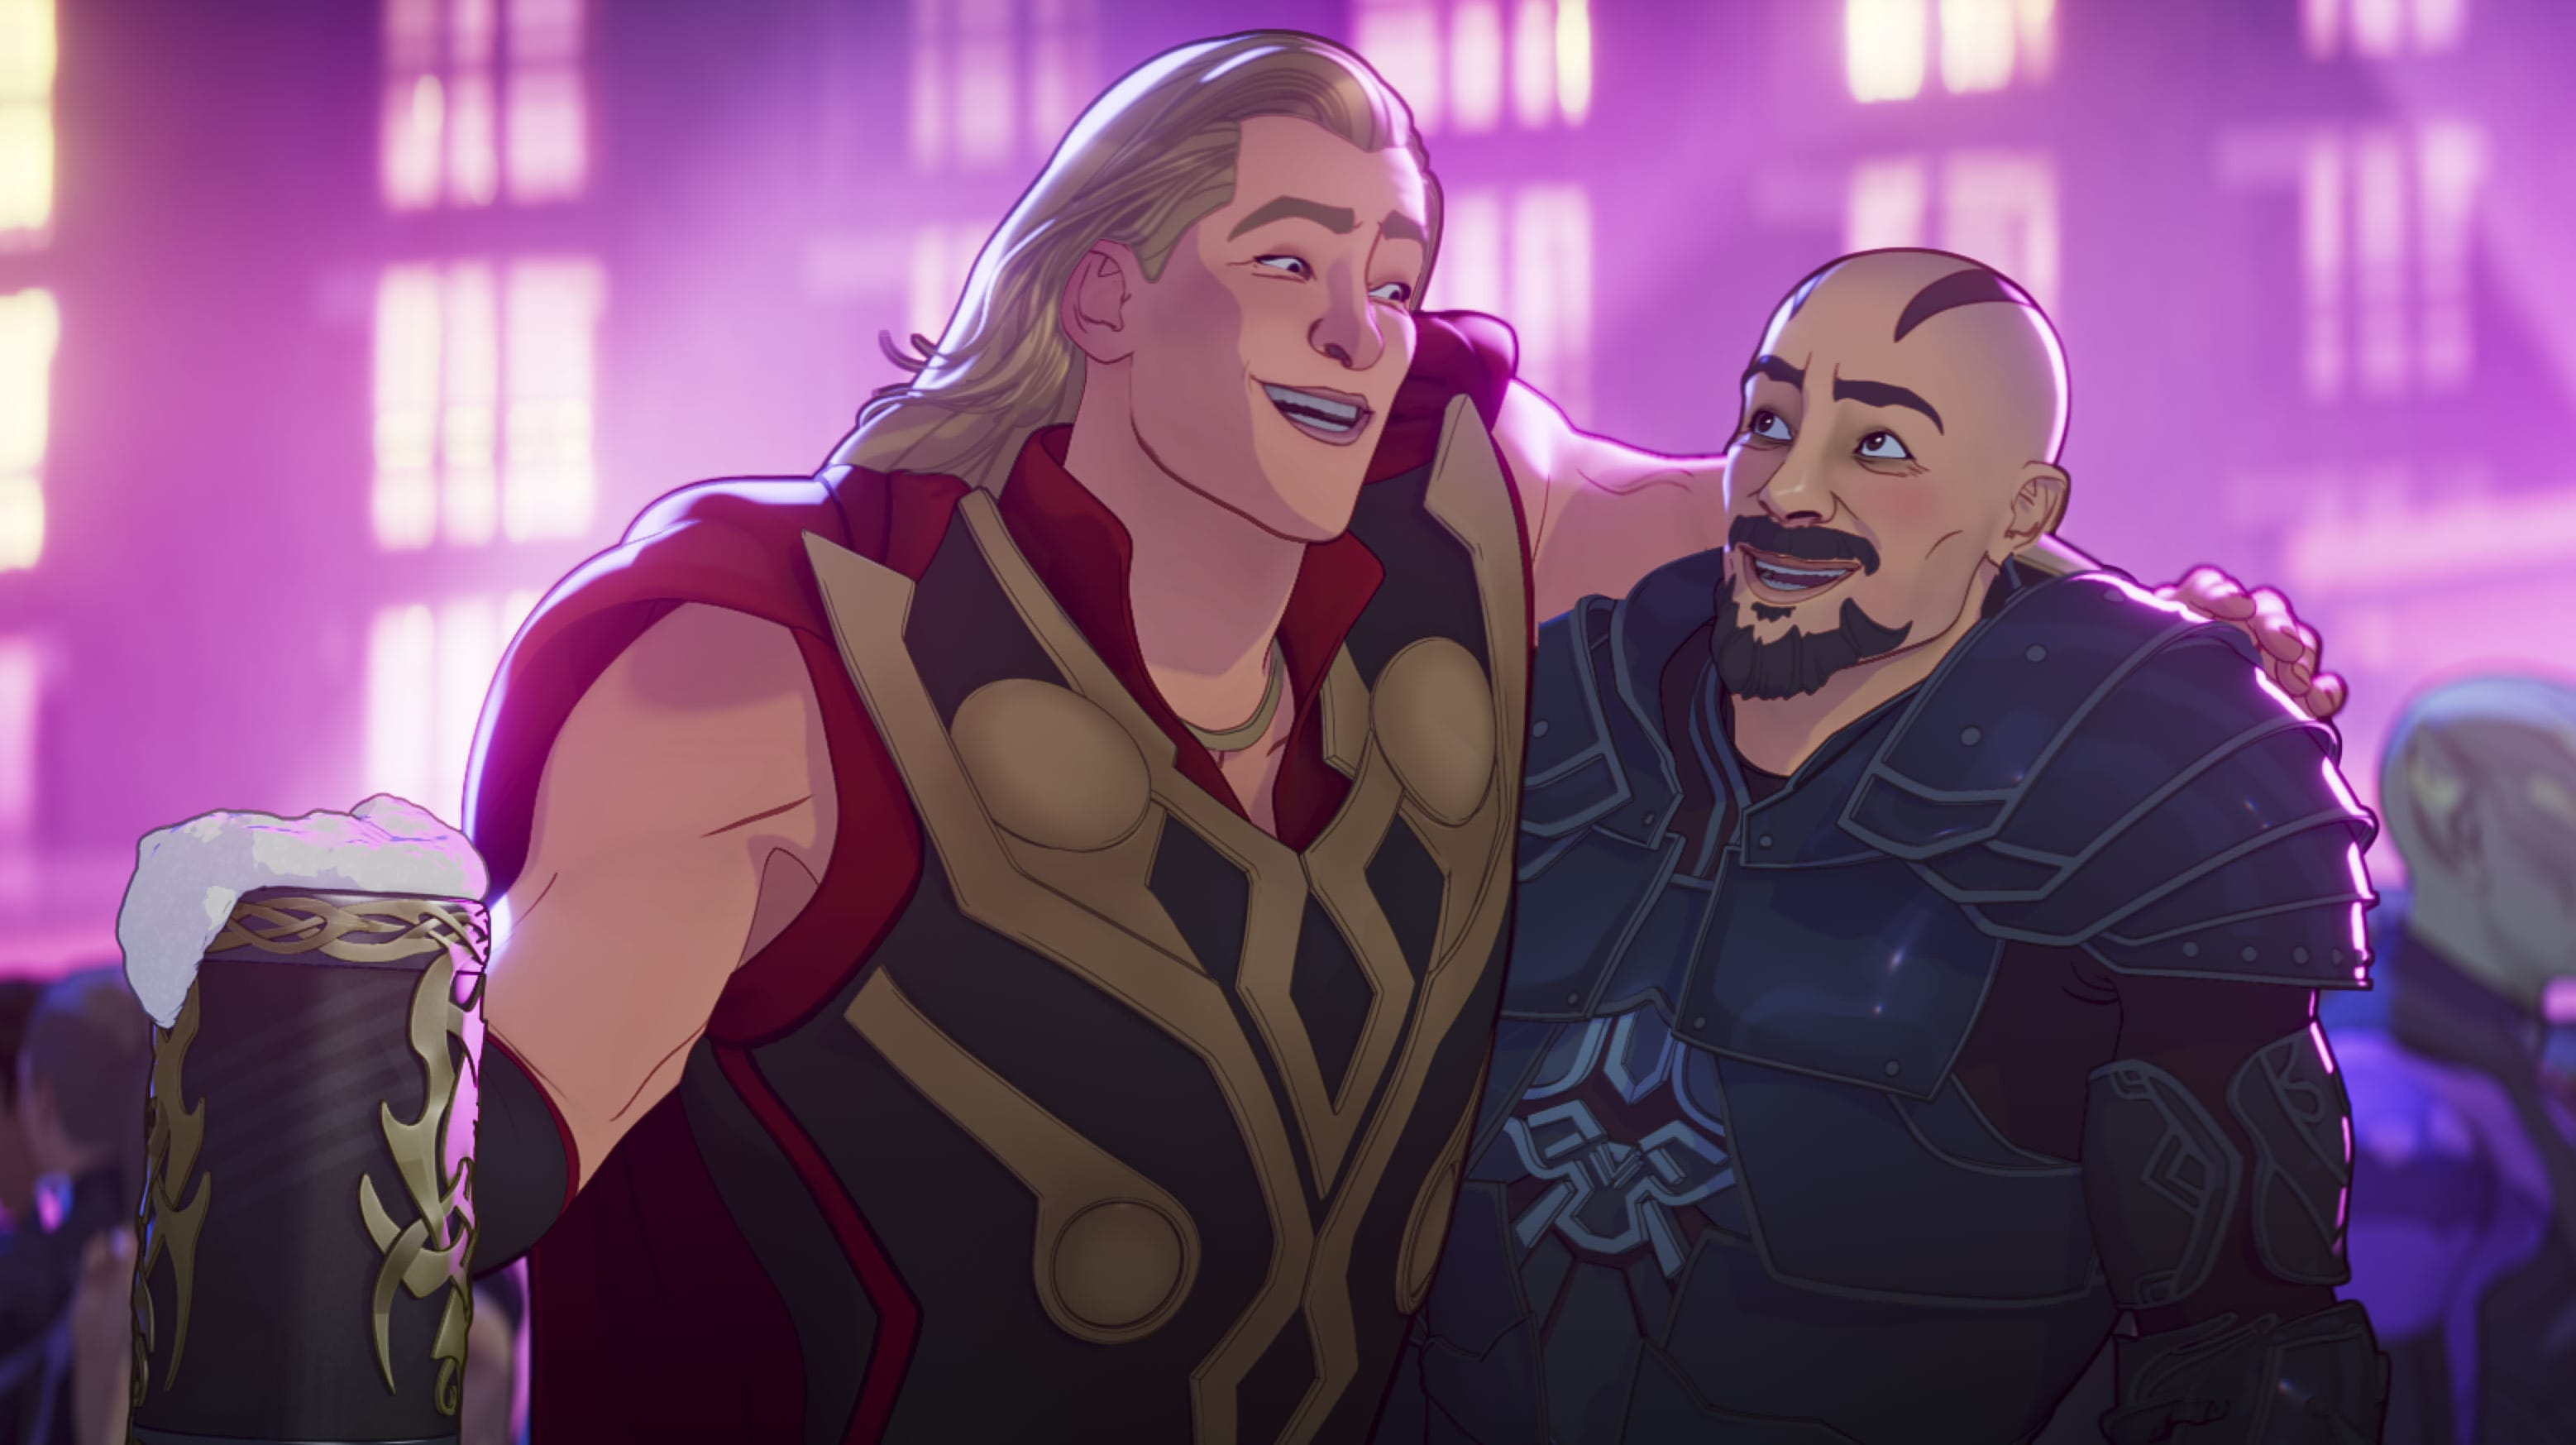 Party Thor and Skurge in Marvel Studios' WHAT IF…? exclusively on Disney+. ©Marvel Studios 2021. All Rights Reserved.